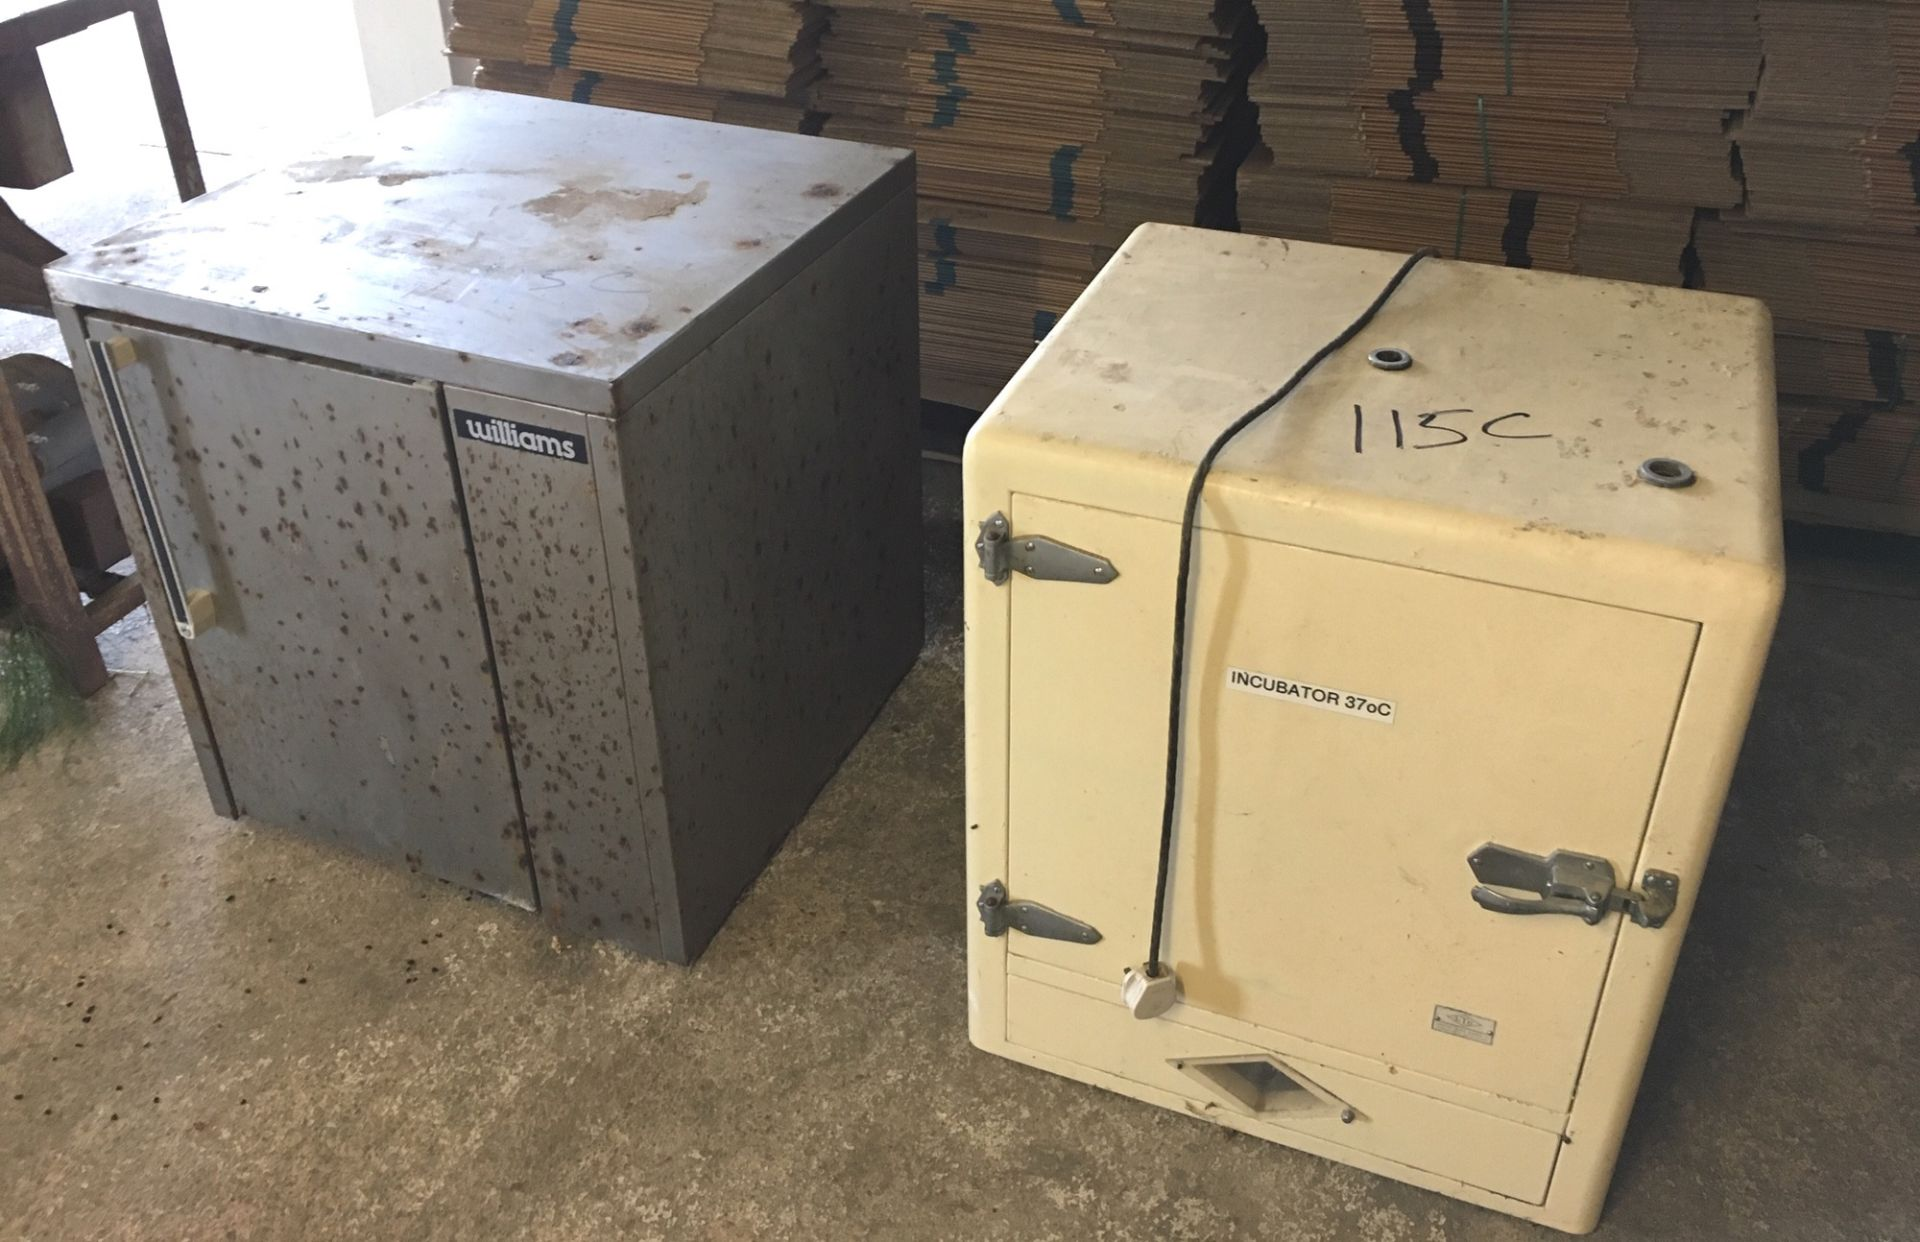 Lot 115C - Pair of Metal Incubator Units.